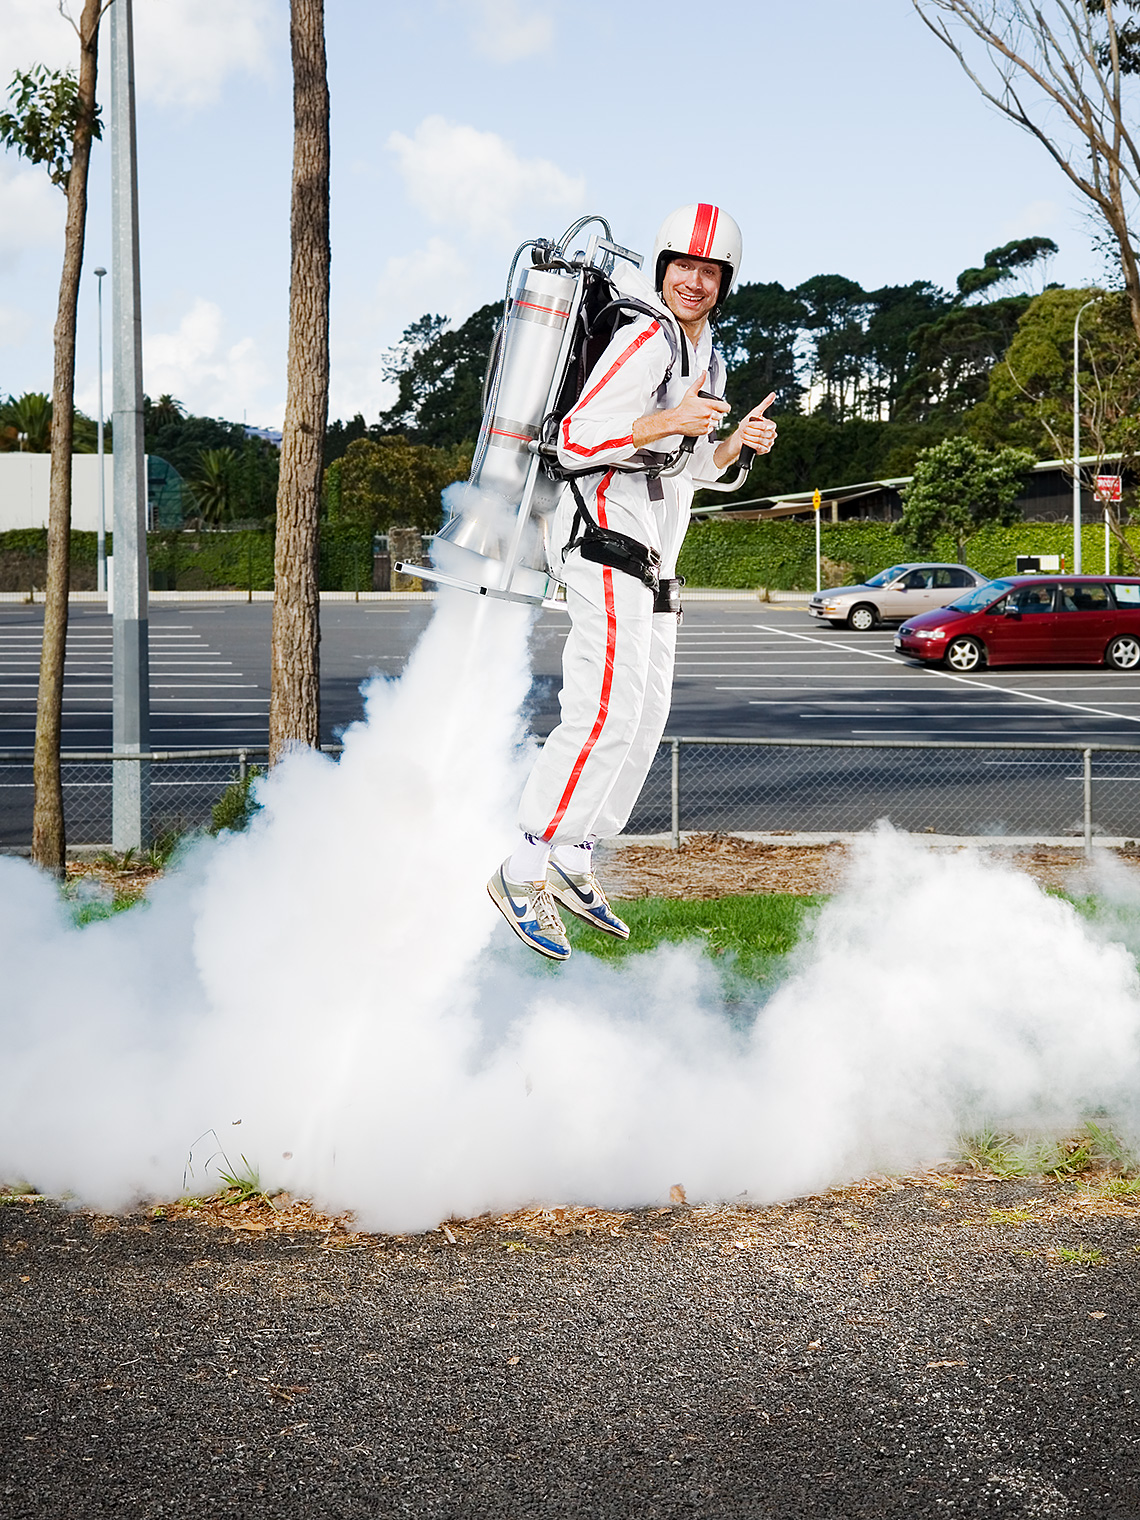 Dougal Wilson propelled by jetpack